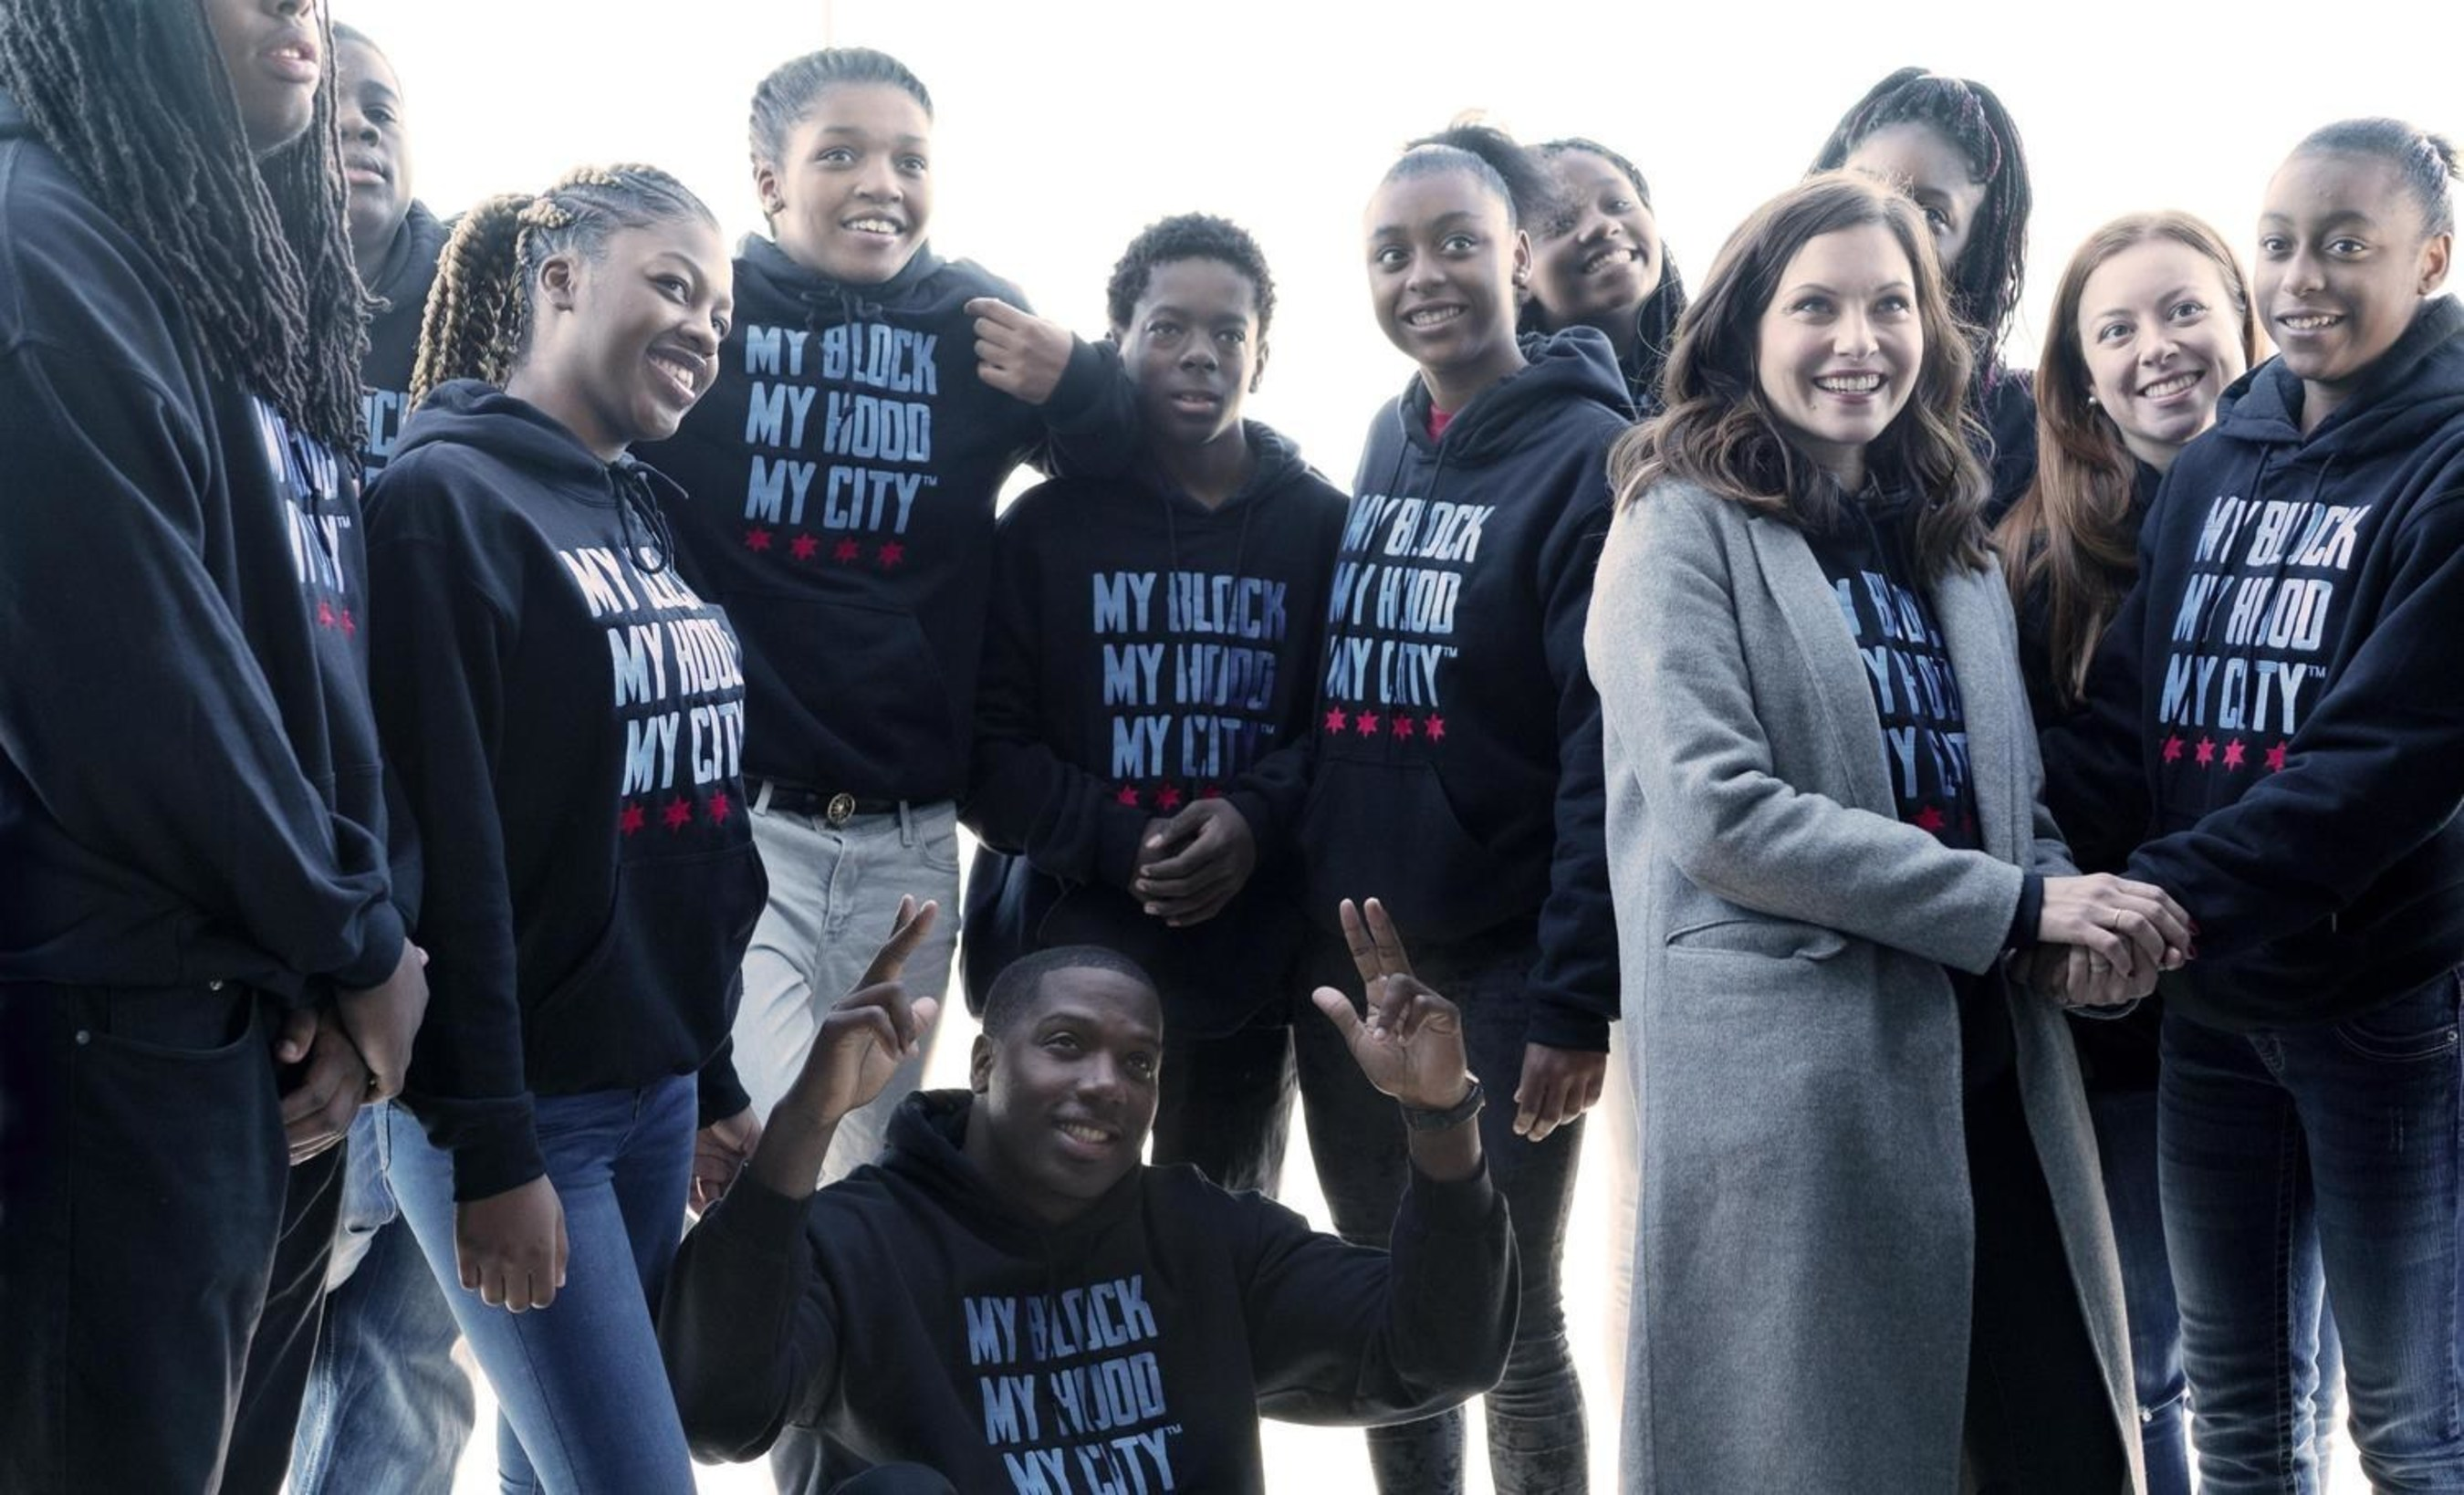 Mazda and NBCUniversal Announce Winner of 2016 Mazda Drive for Good Nonprofit Contest: My Block, My Hood, My City